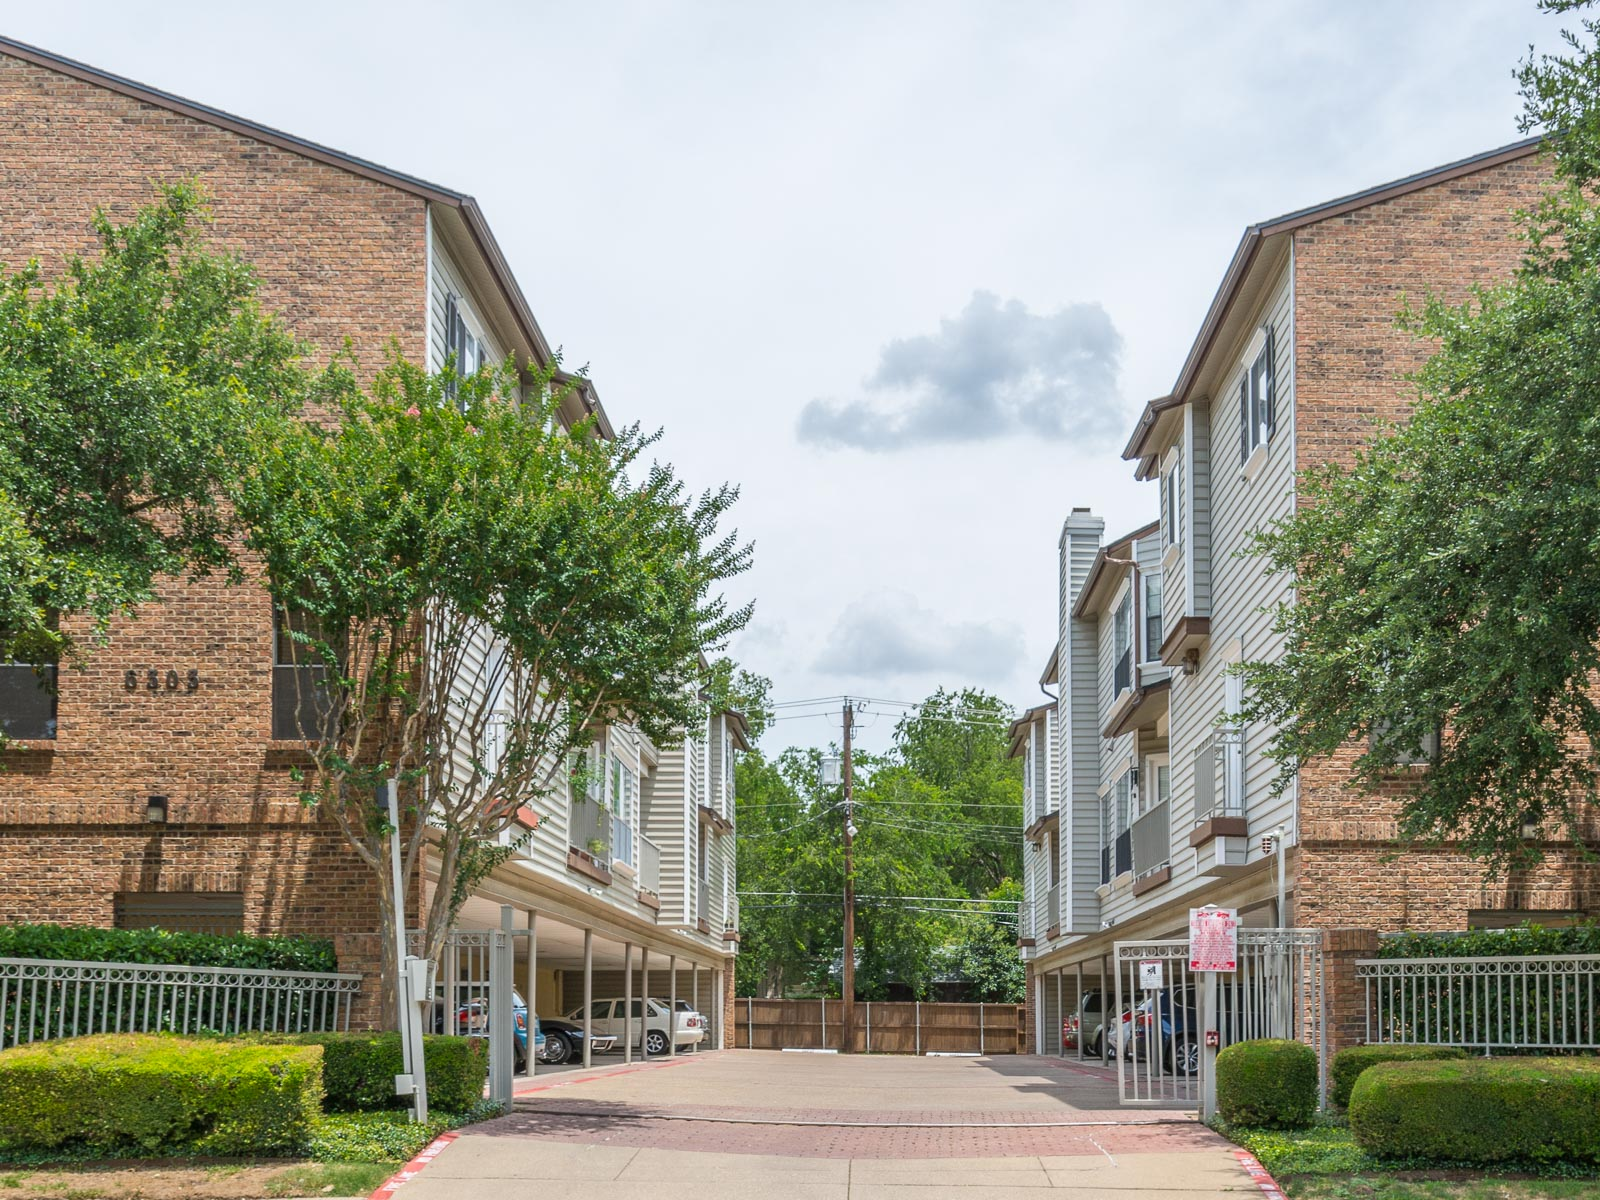 Condominium for Sale at Lakewood Condominium 6303 Richmond Avenue #208 Dallas, Texas 75214 United States